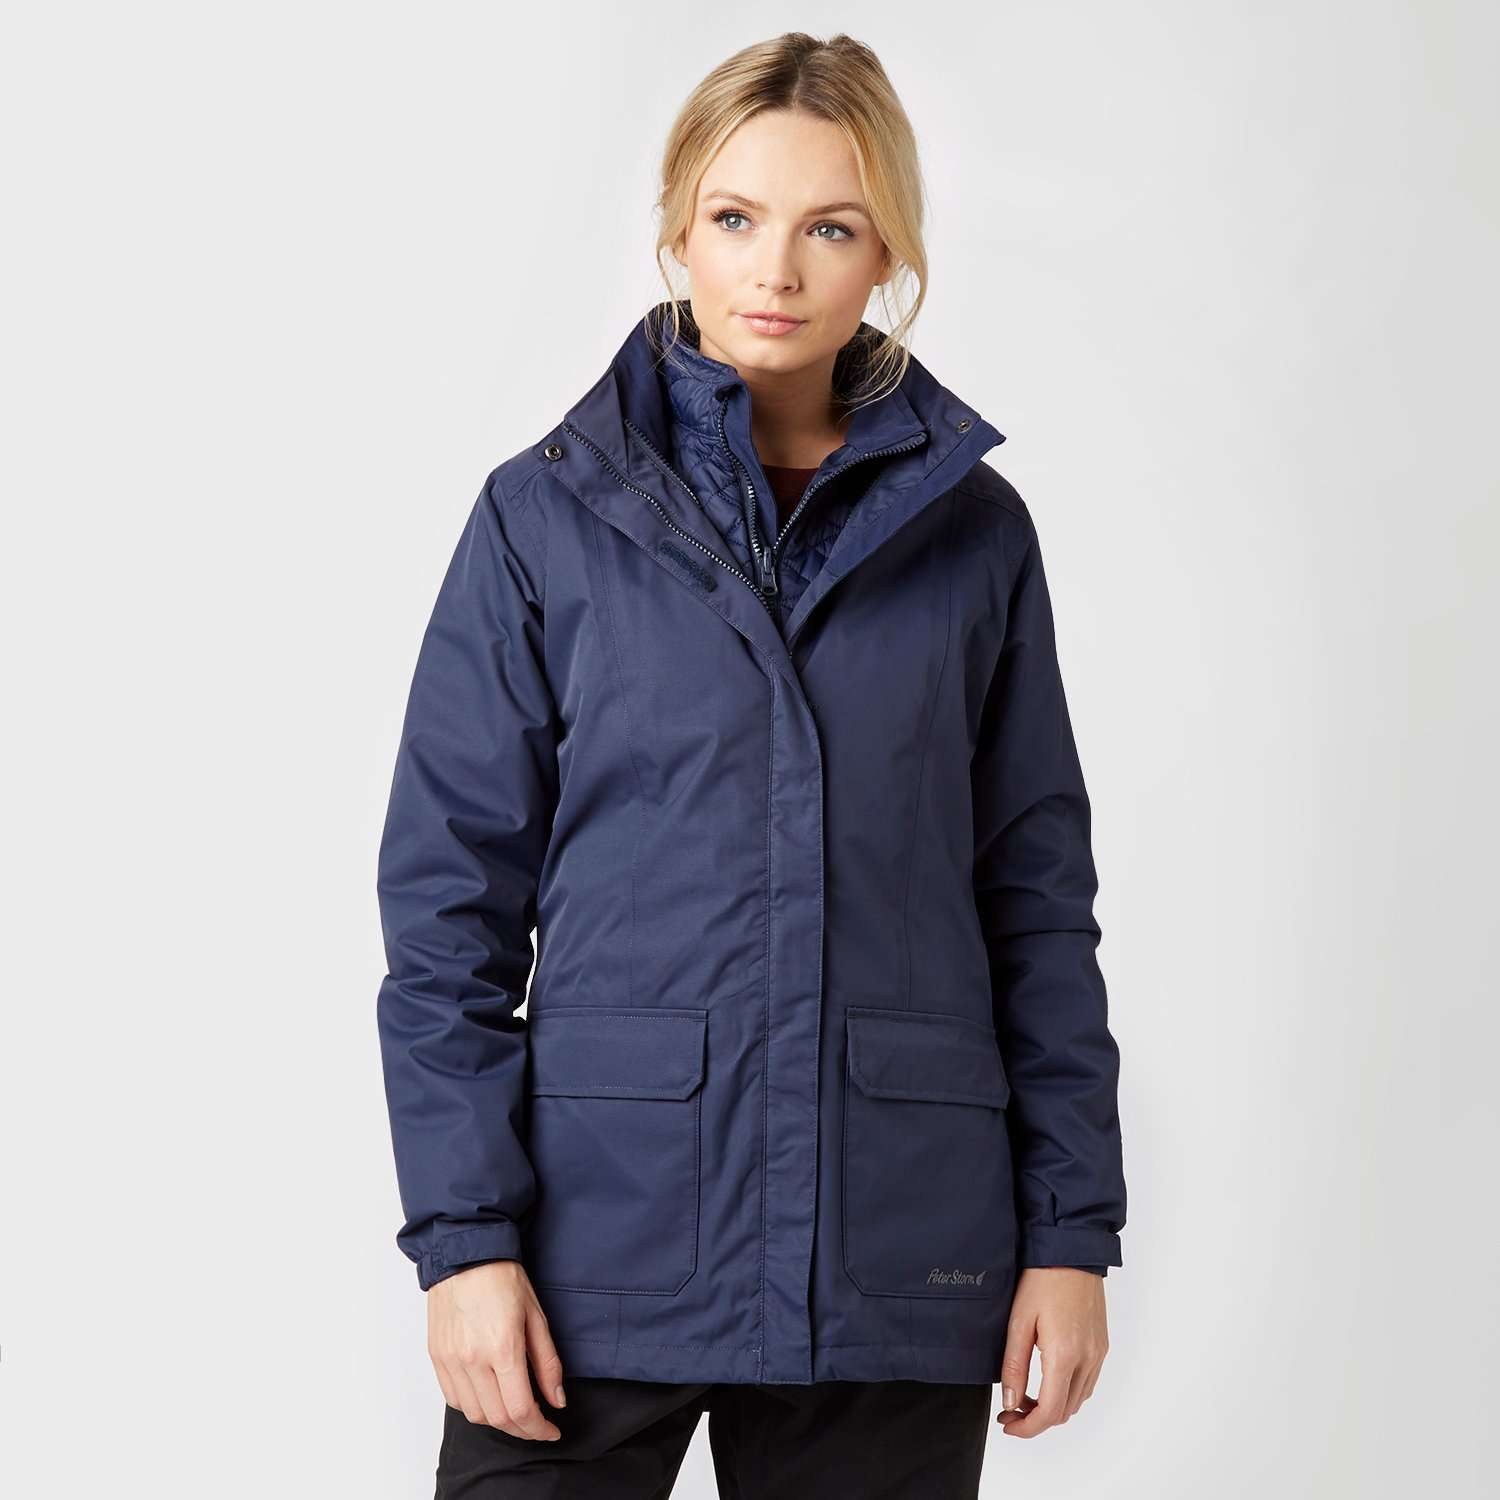 PETER STORM Women's Insulated 3 in 1 Jacket